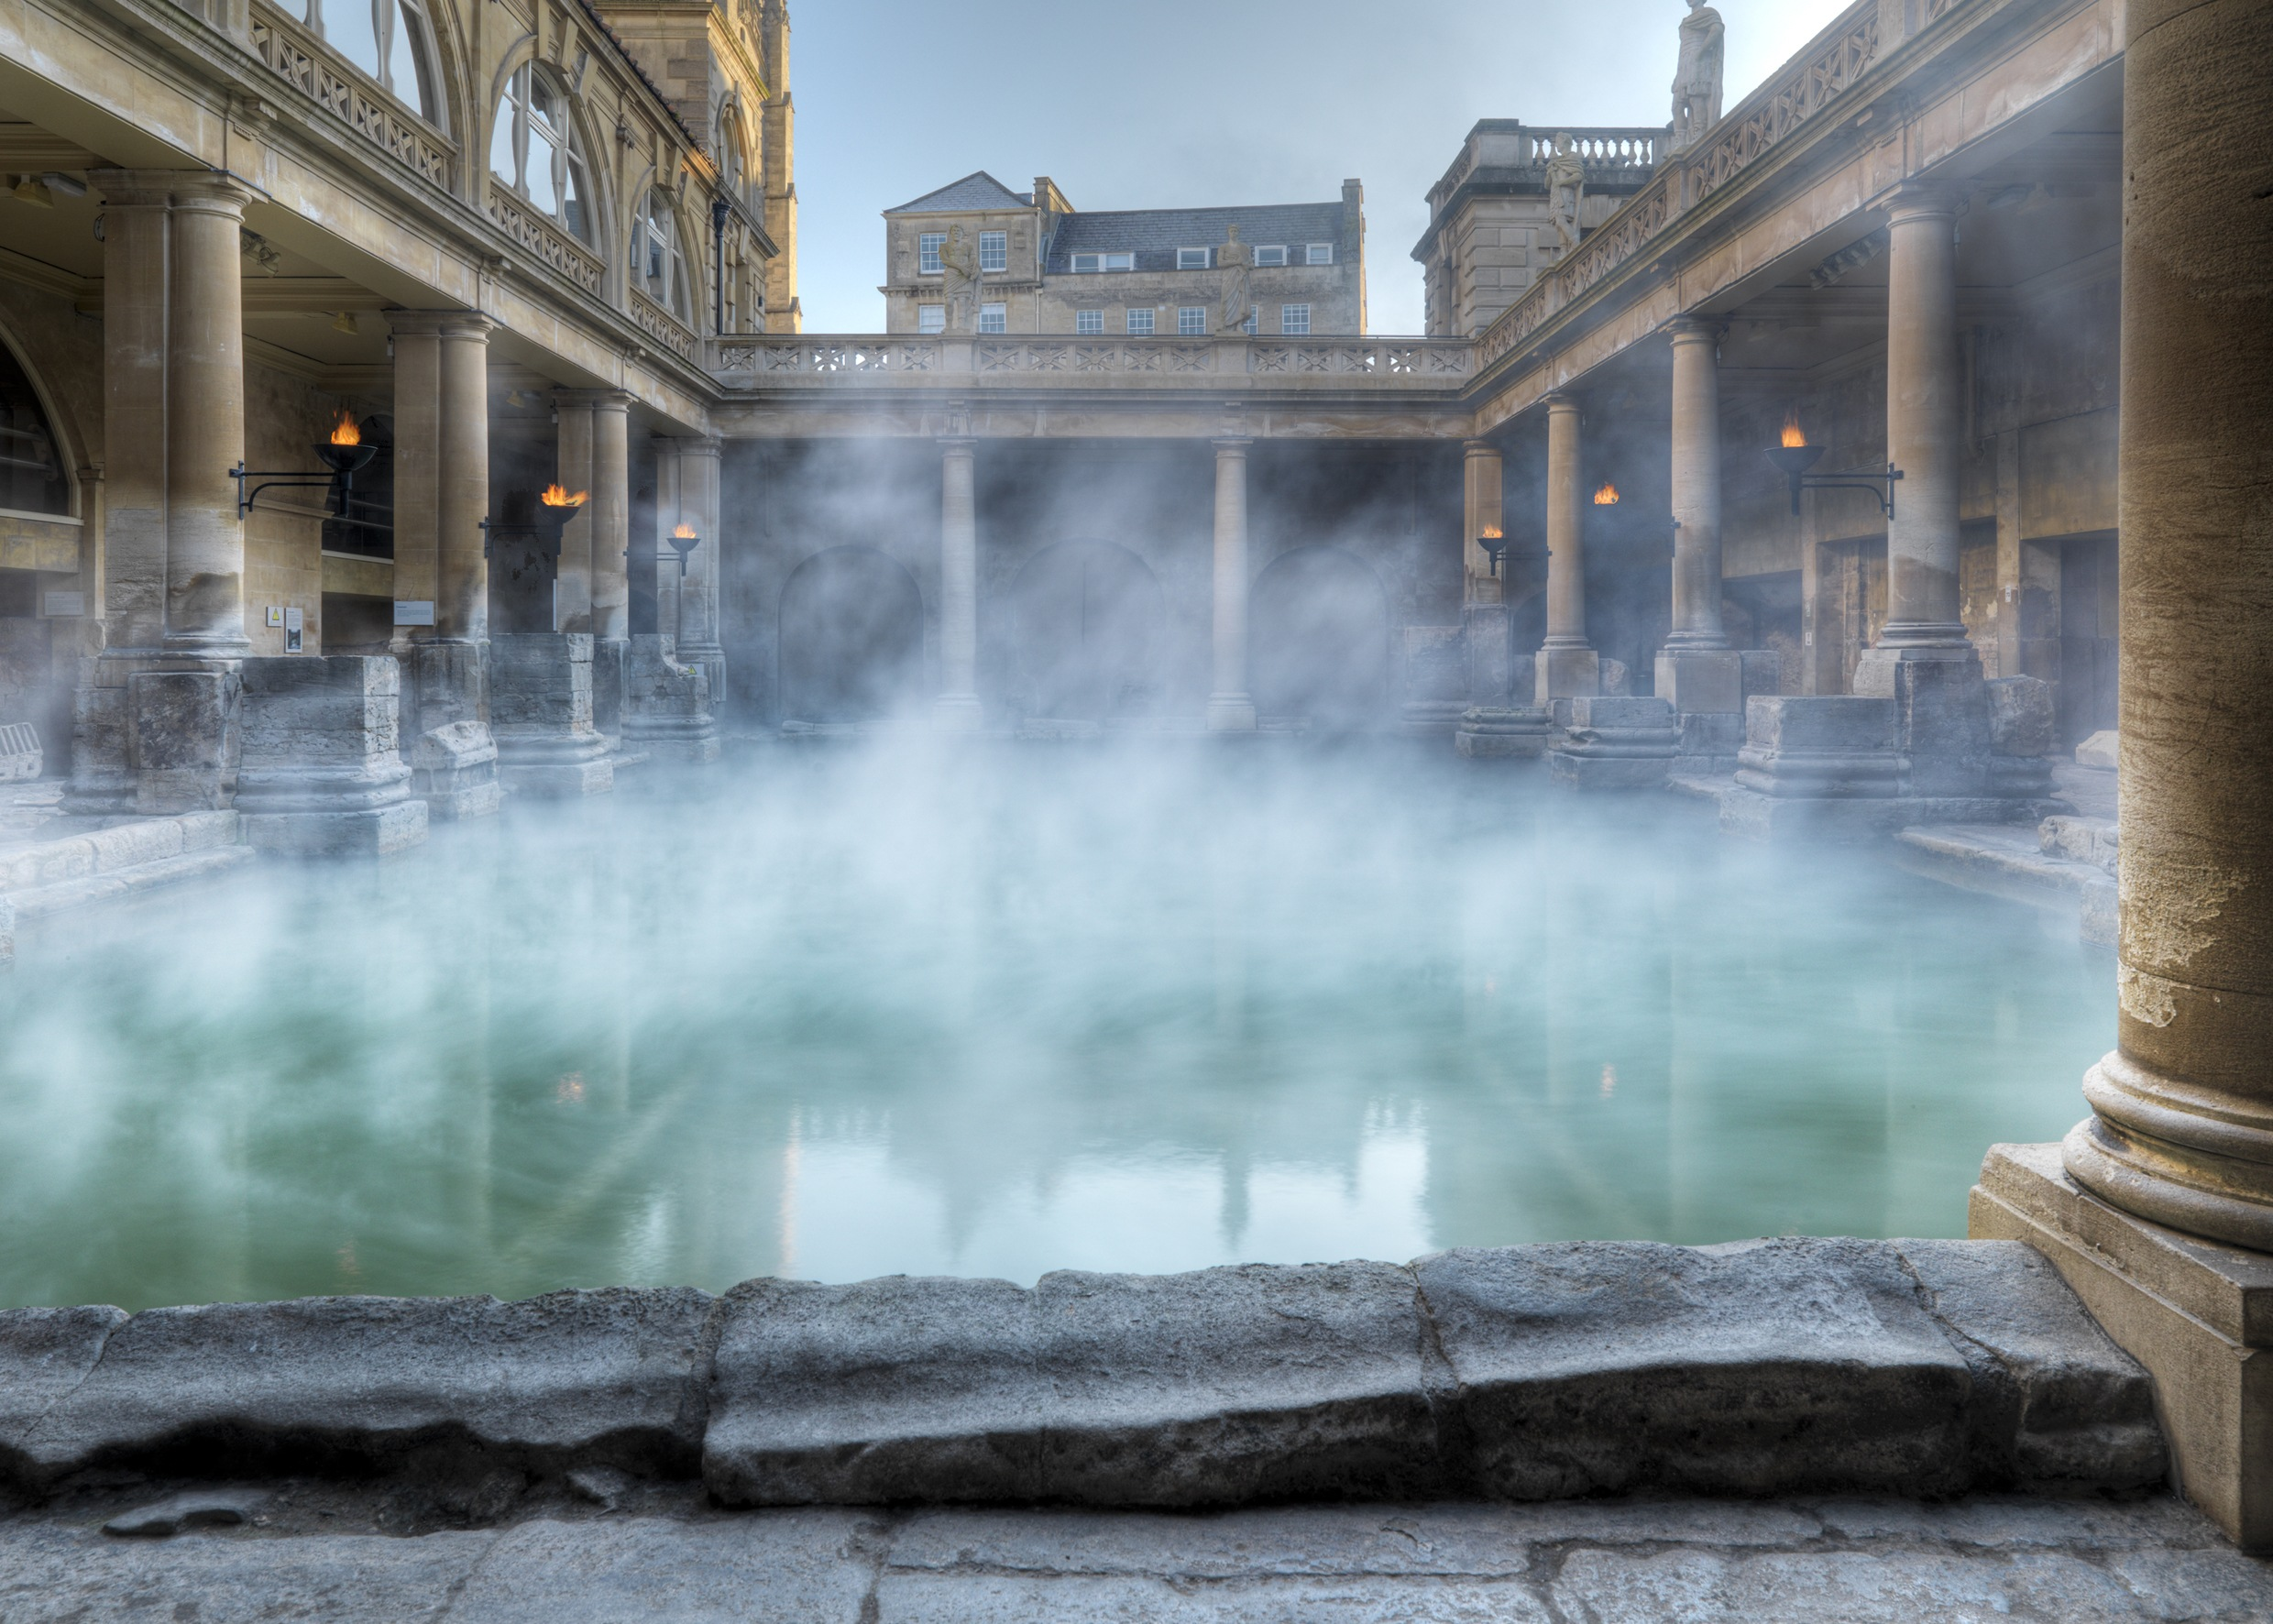 Interior Bath Images world heritage site bath welcome to the image great at roman baths tourism plus